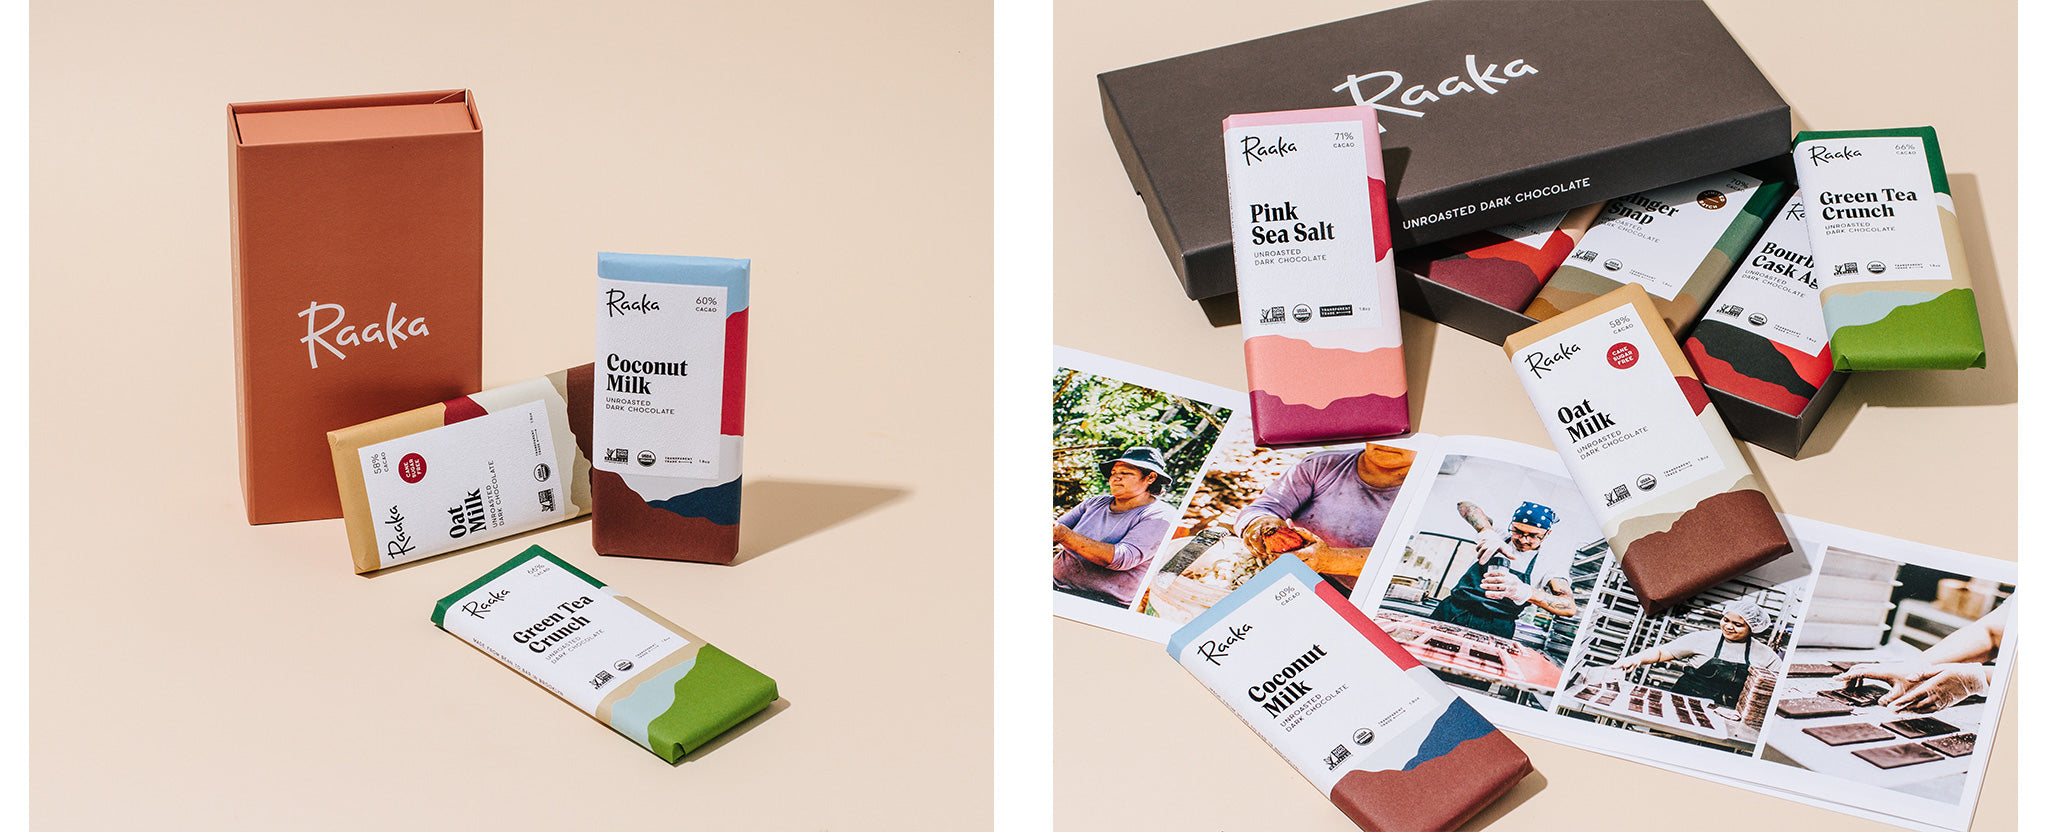 Raaka Three Bar Gift Pack and Chocolate Library Box with eight chocolate bars and a booklet